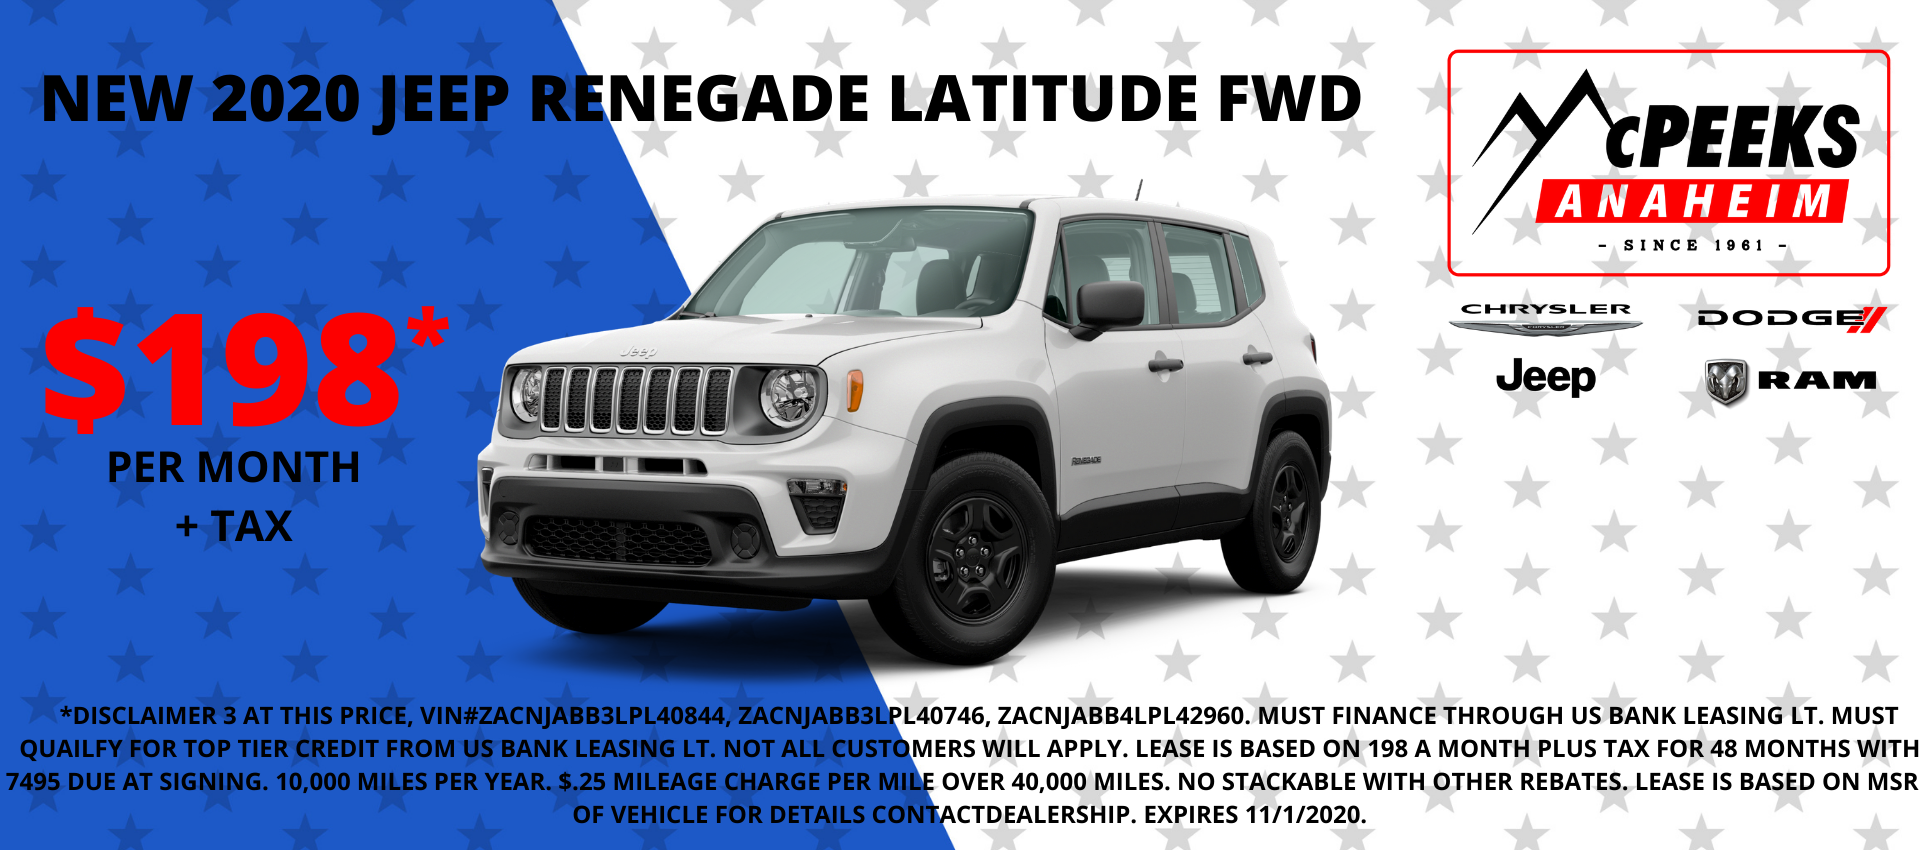 Final 10-14-2020 Renegade with Asterisk